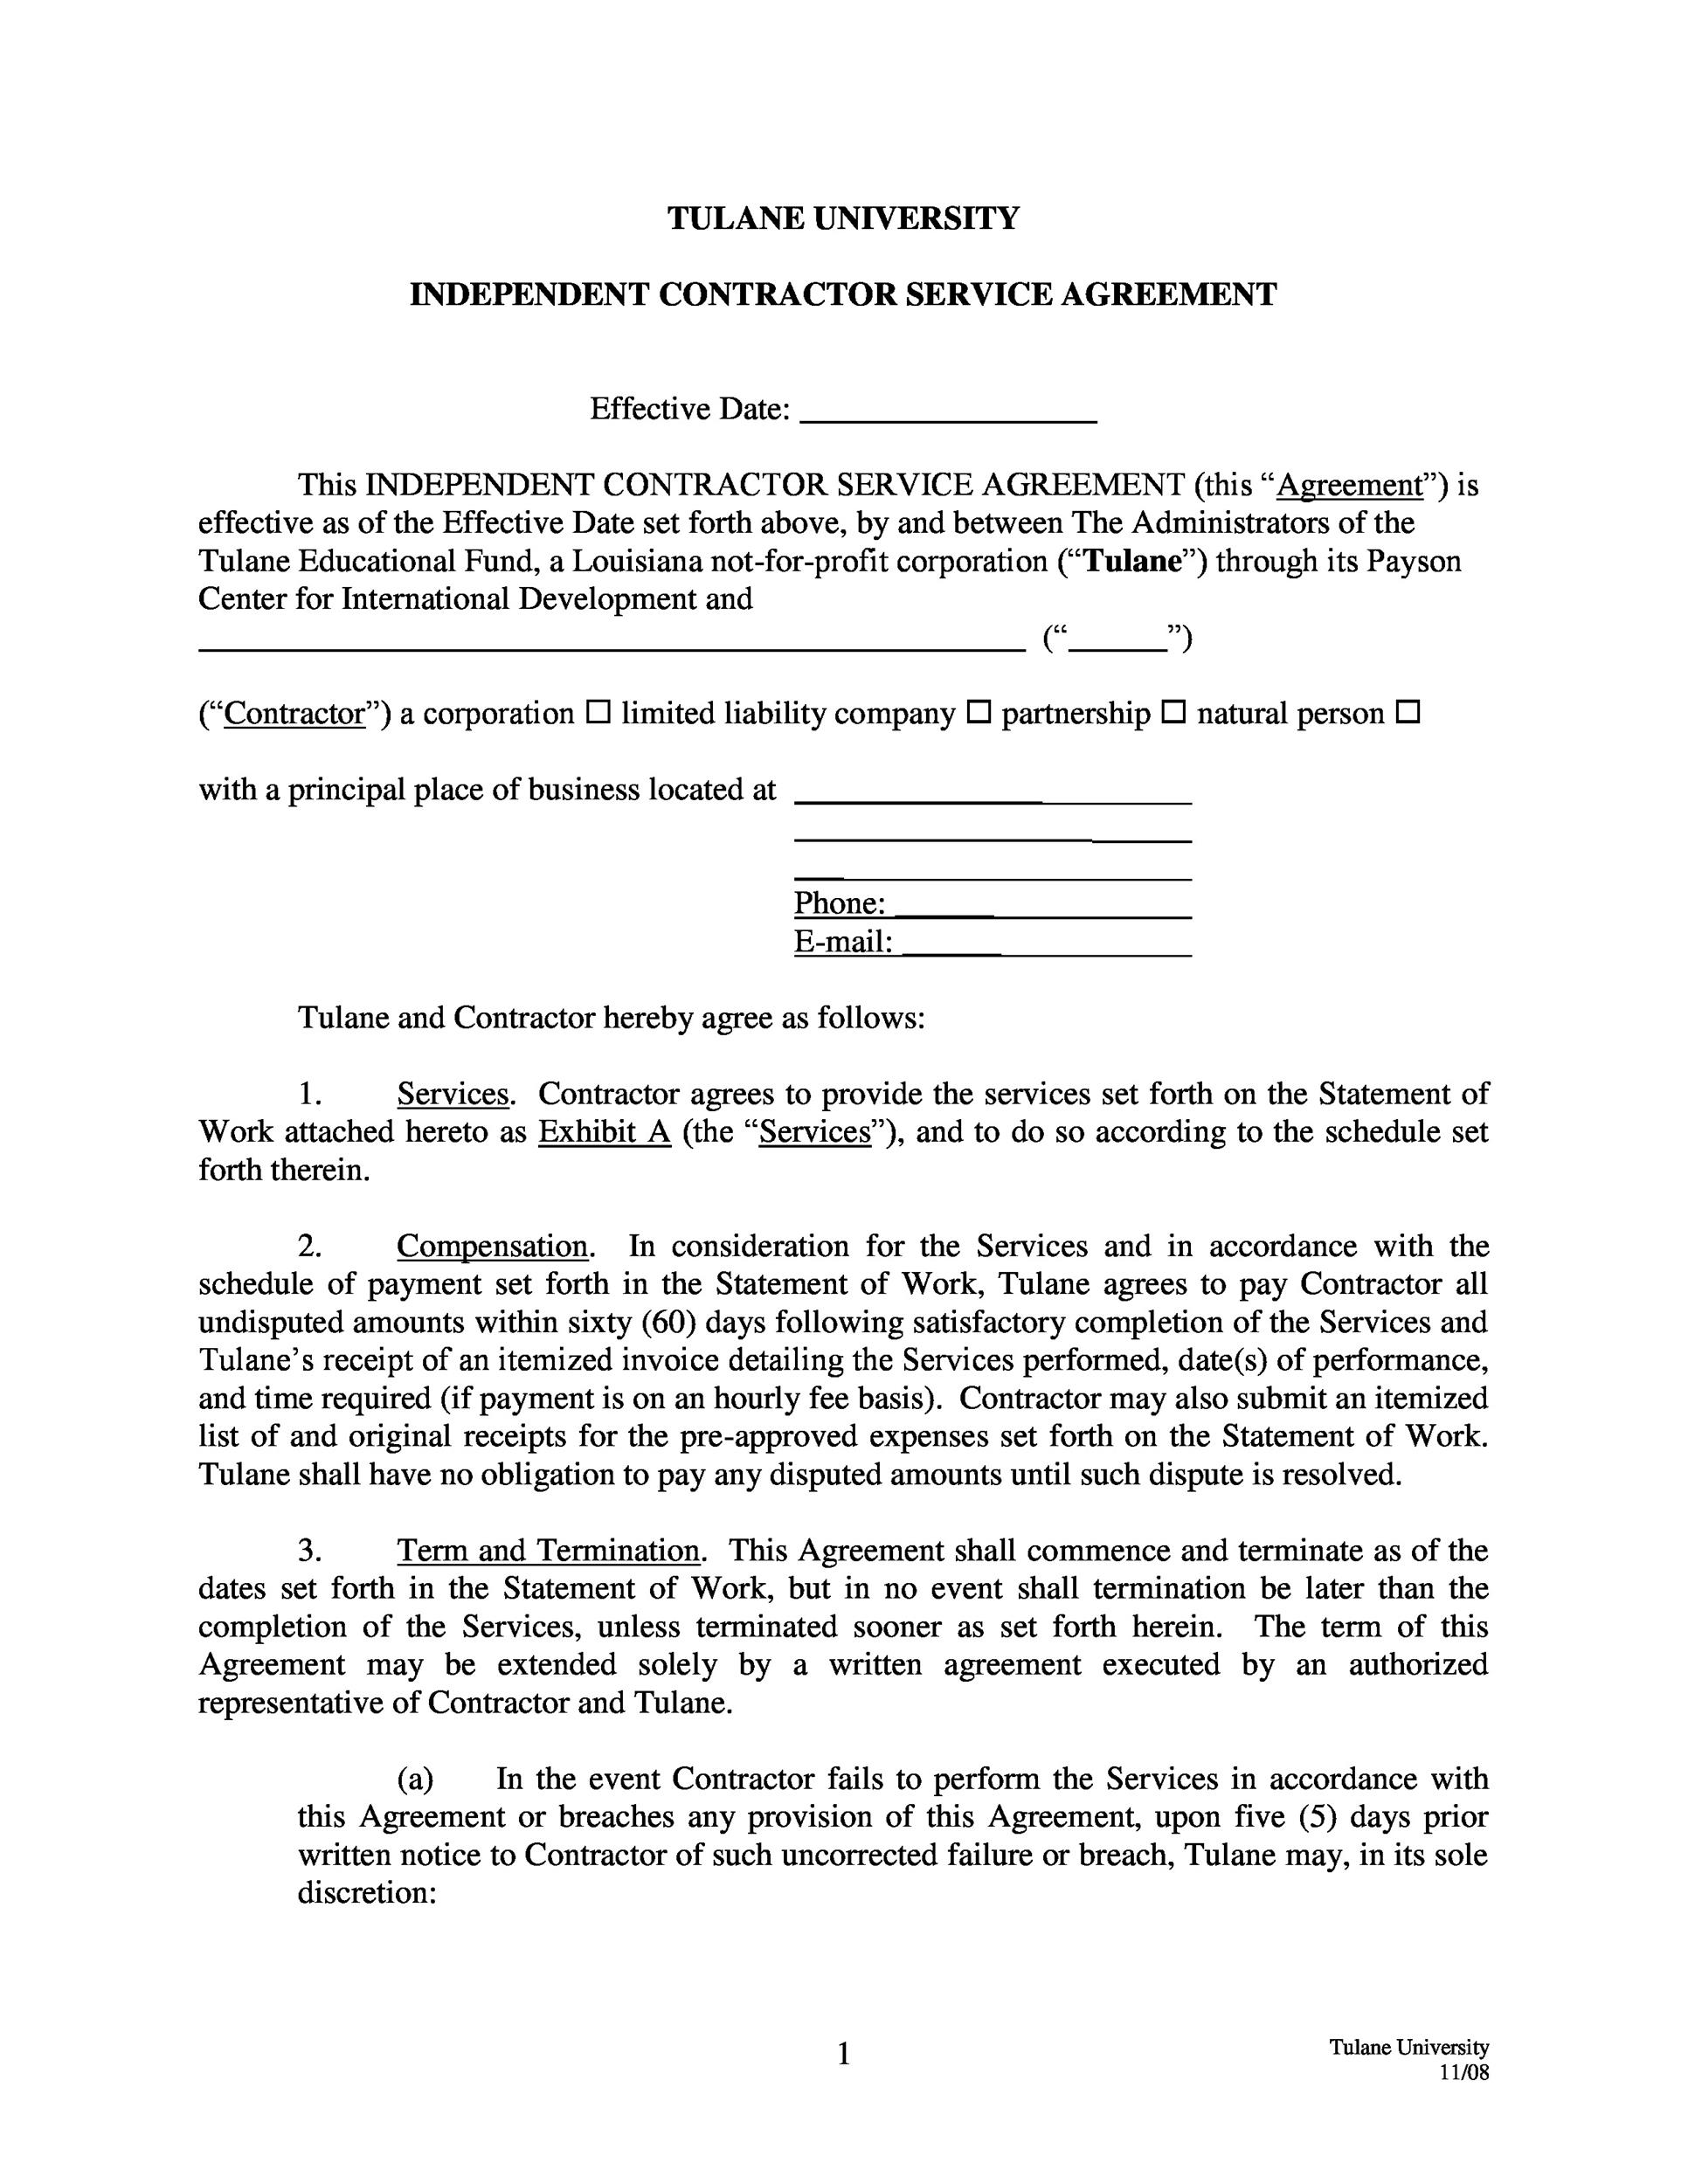 Independent Contractor Agreement Free Template Suyhi